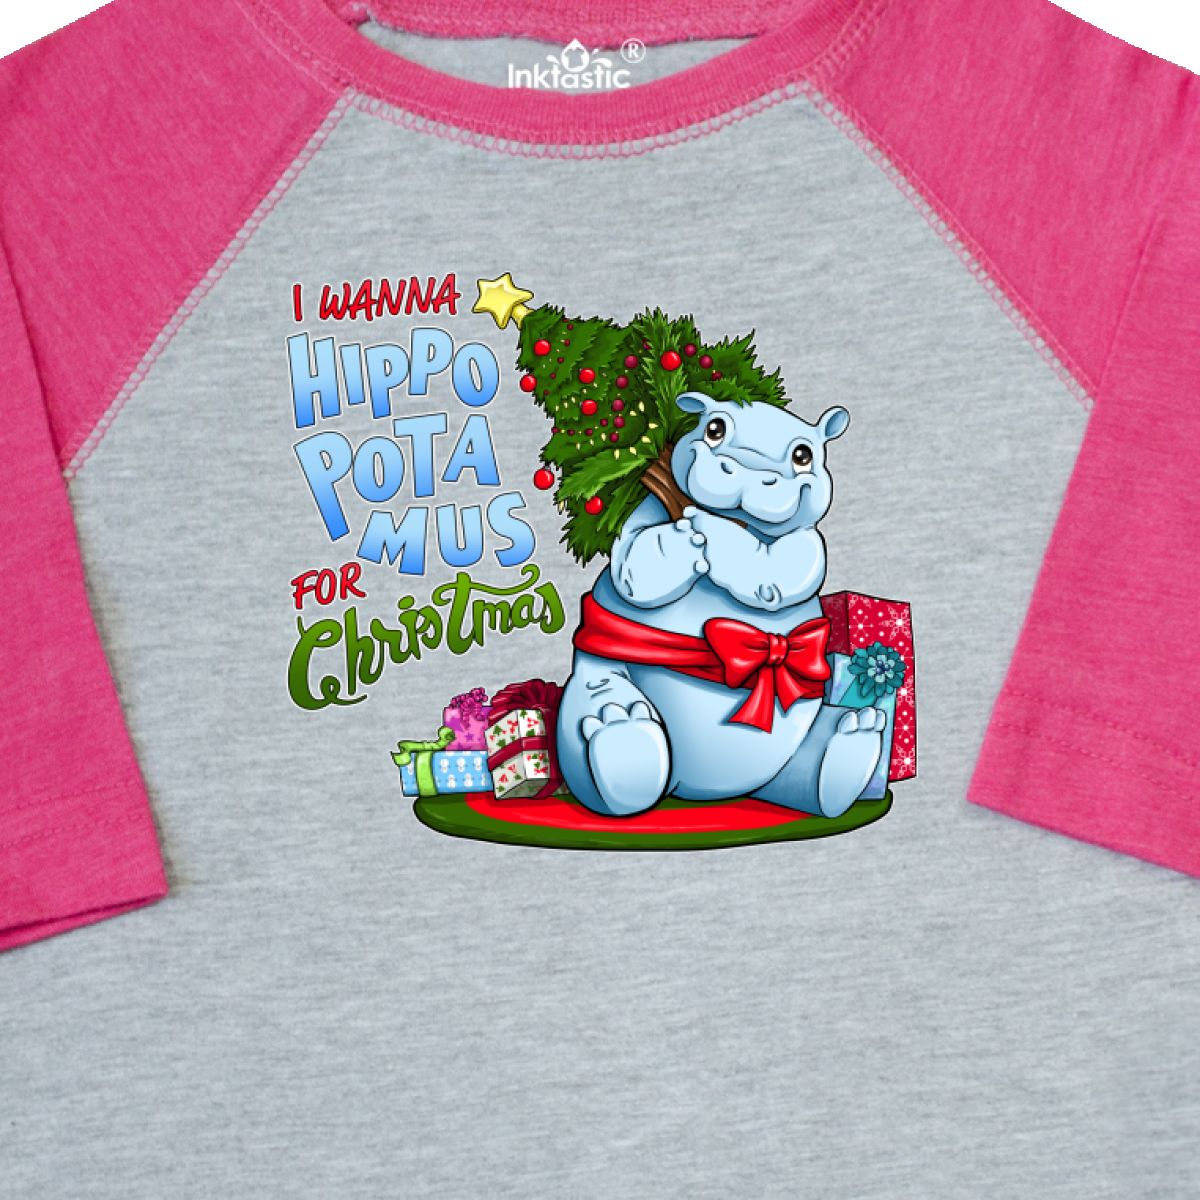 I Want Hippopotamus For Christmas.Details About Inktastic I Wanna Hippopotamus For Christmas Cute Hippo Toddler T Shirt Holiday